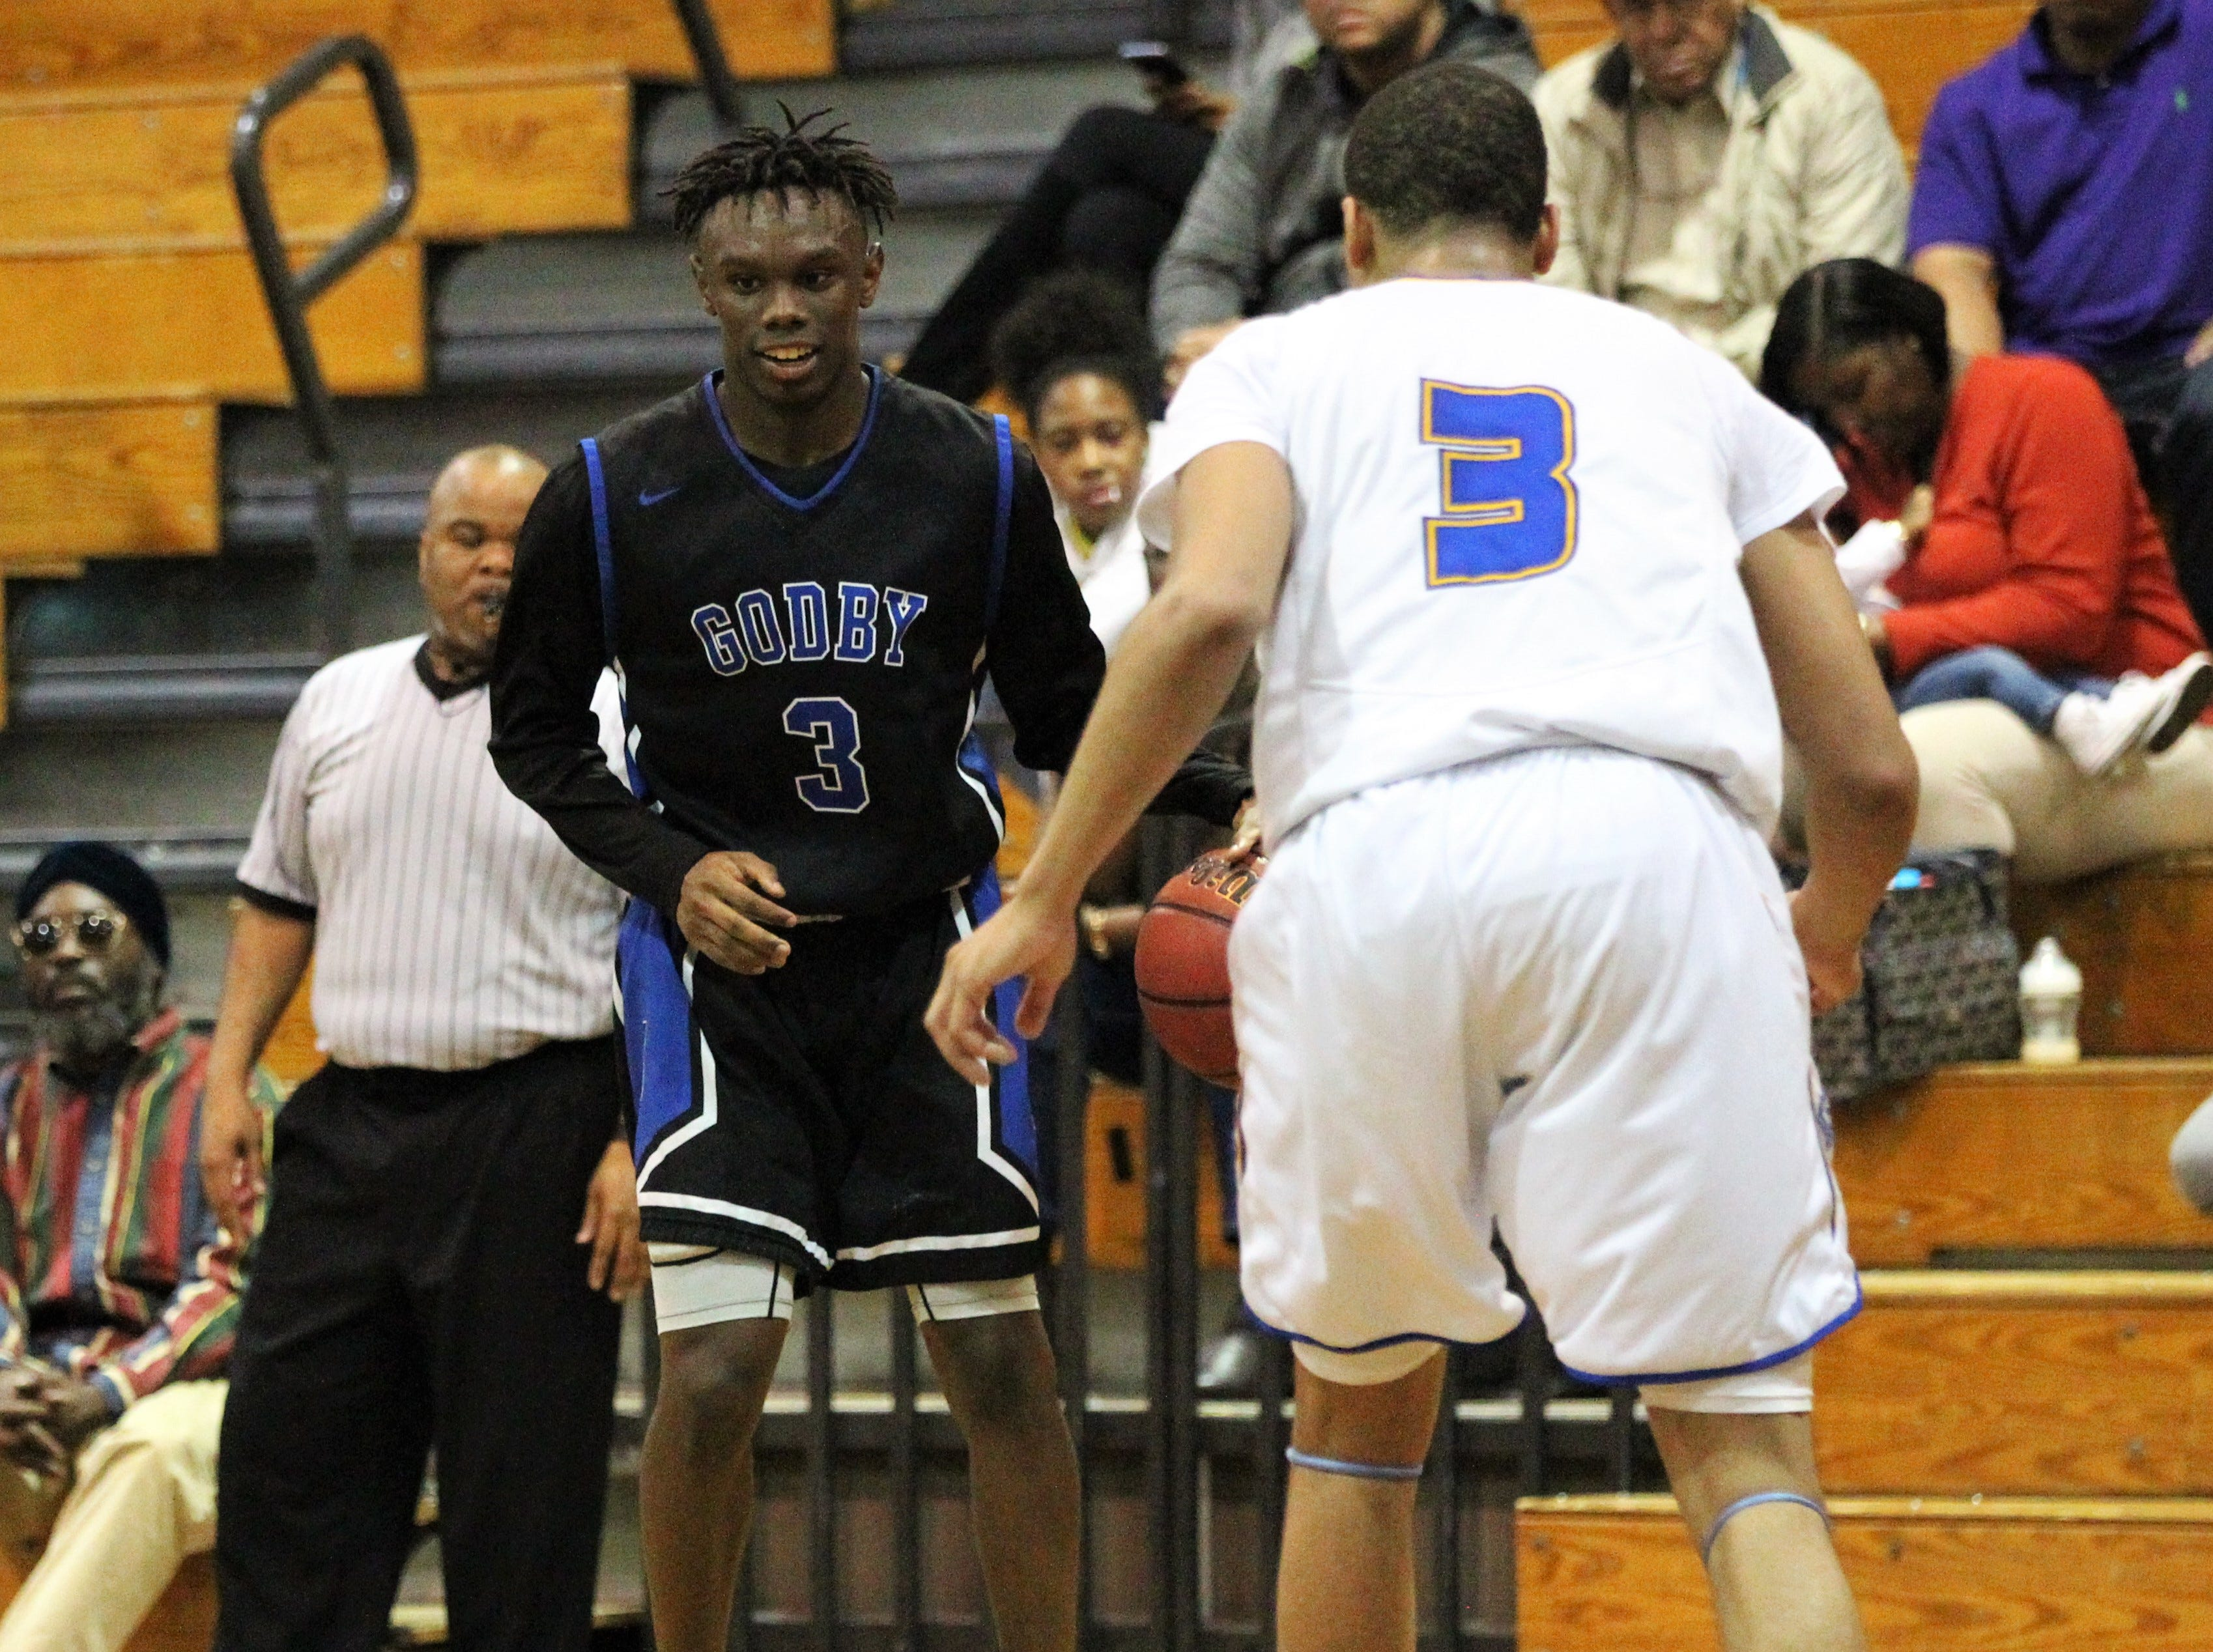 Godby's Deshawn Rucker looks for dribbling room as Rickards' boys basketball team beat Godby 58-47 during a District 2-6A championship game at Chiles on Feb. 15, 2019.